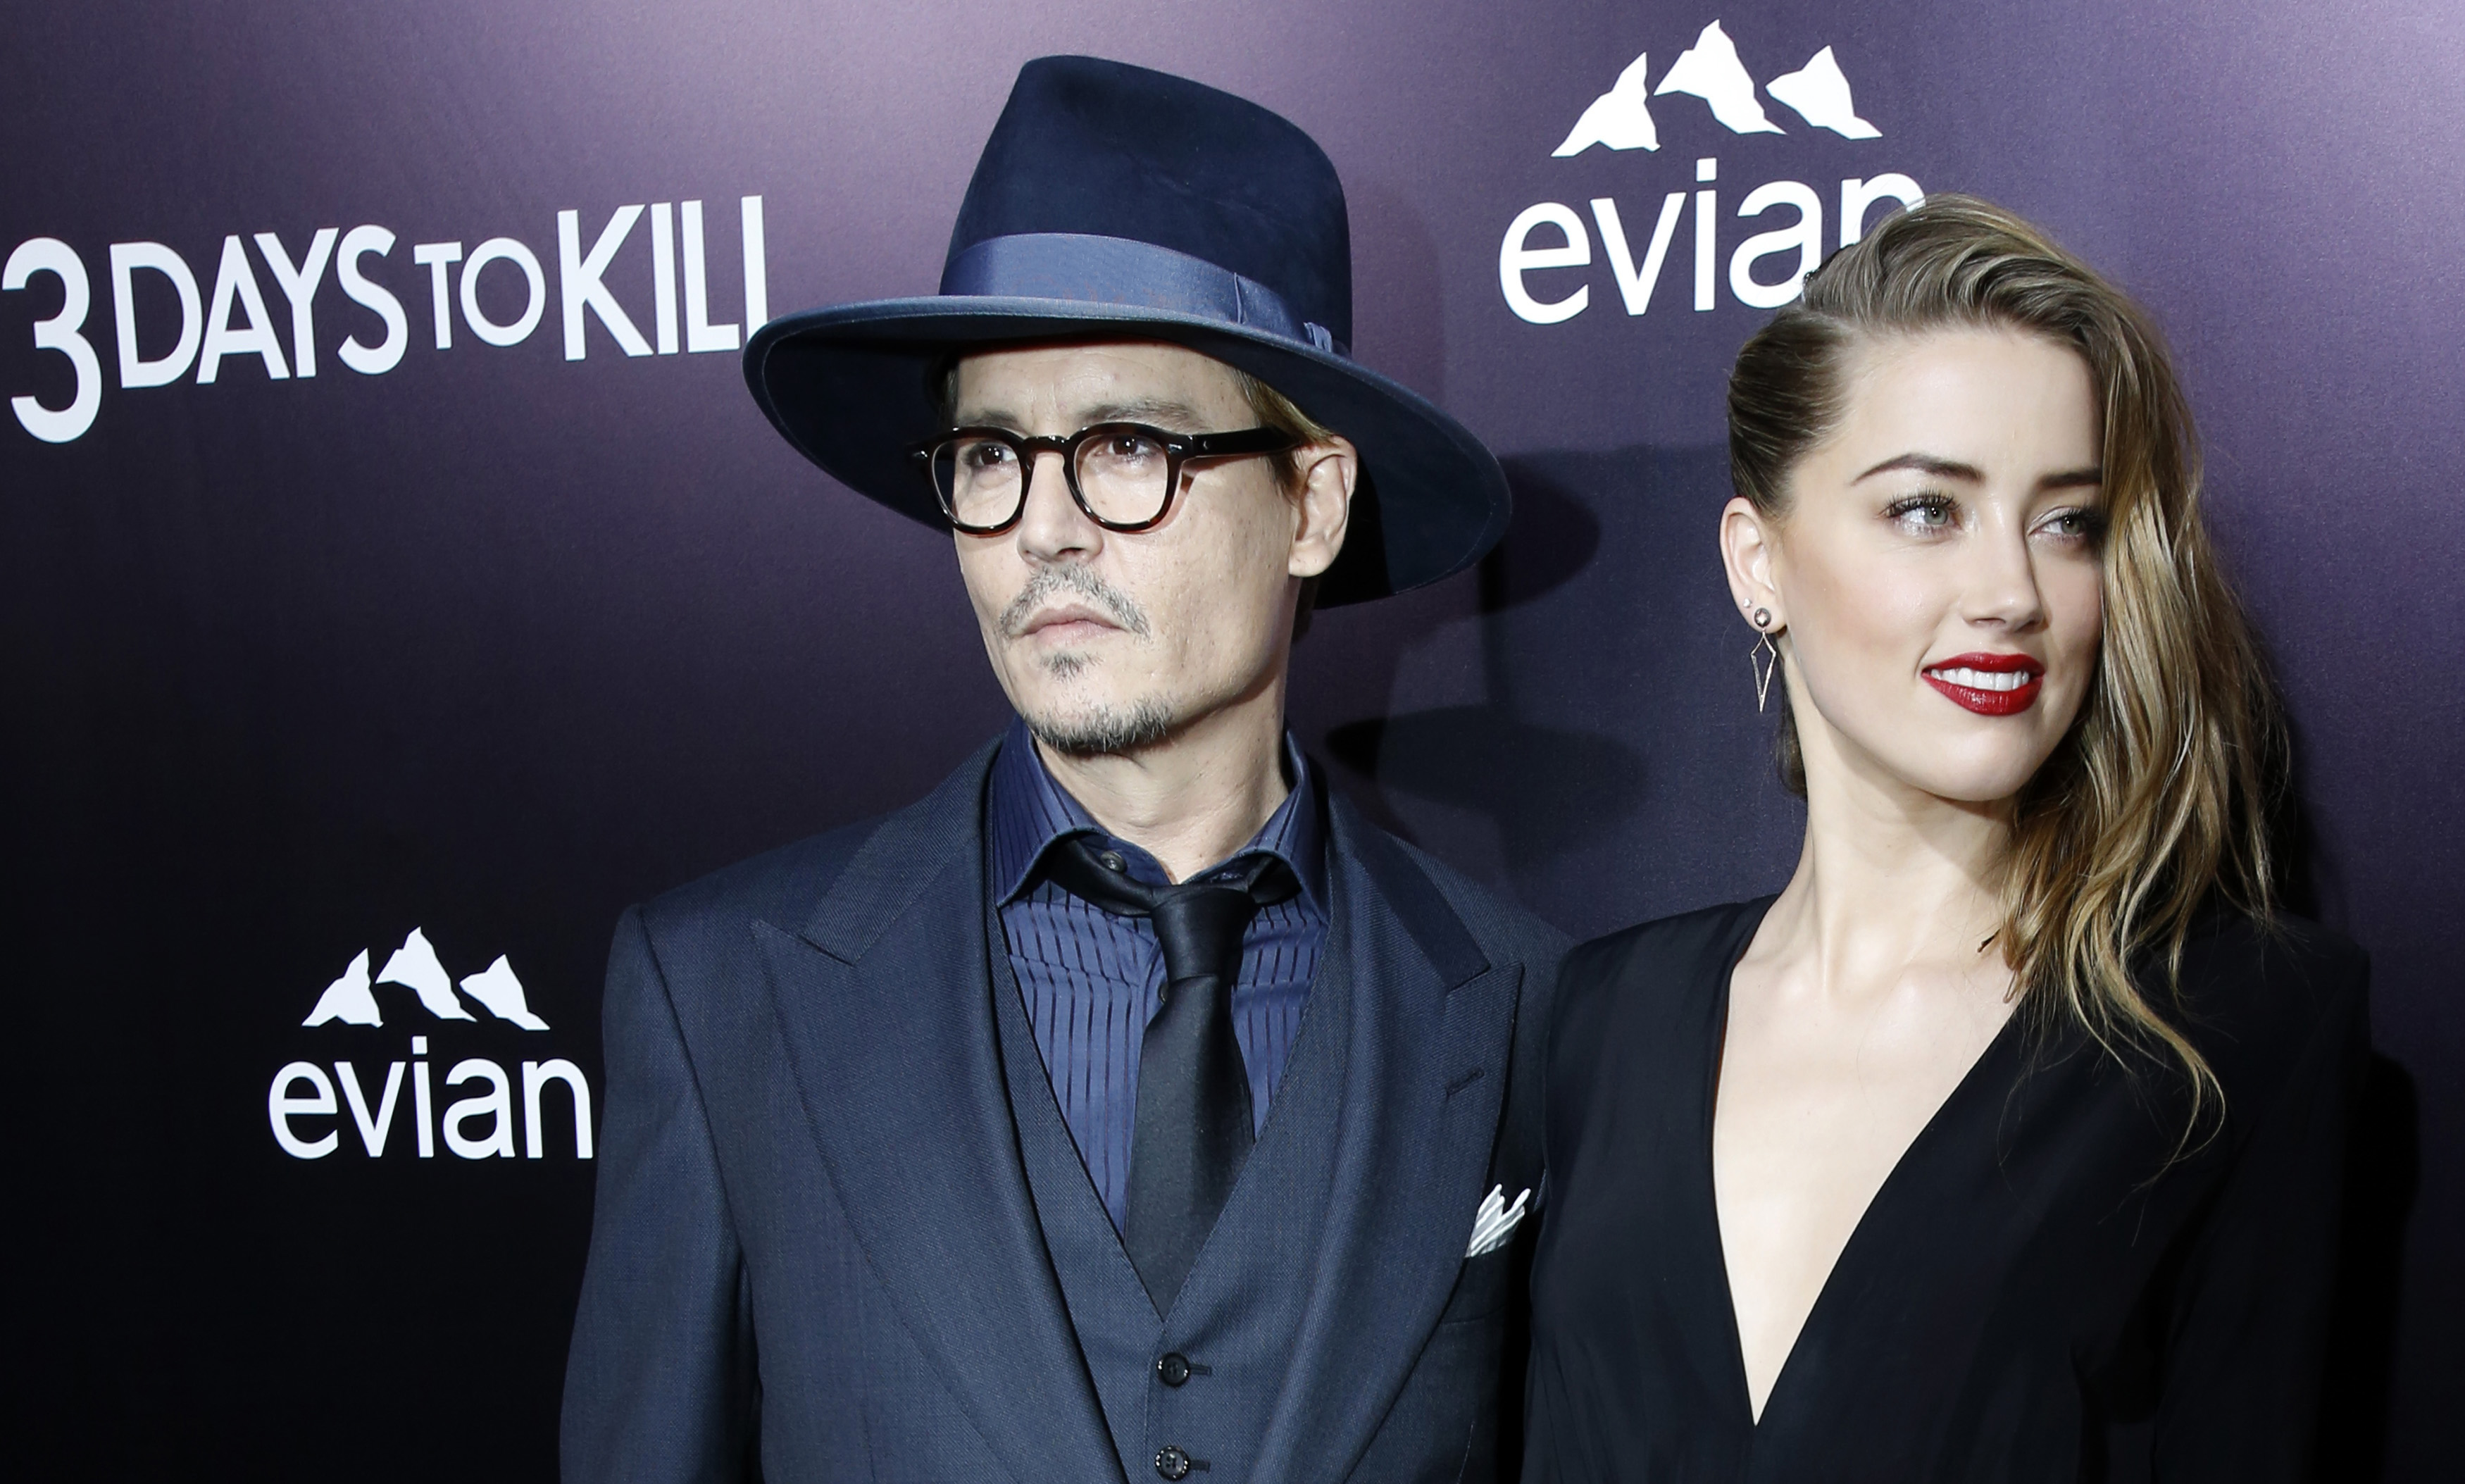 Actress Amber Heard and actor Johnny Depp at the premiere of 3 Days to Kill in Los Angeles on Feb. 12, 2014